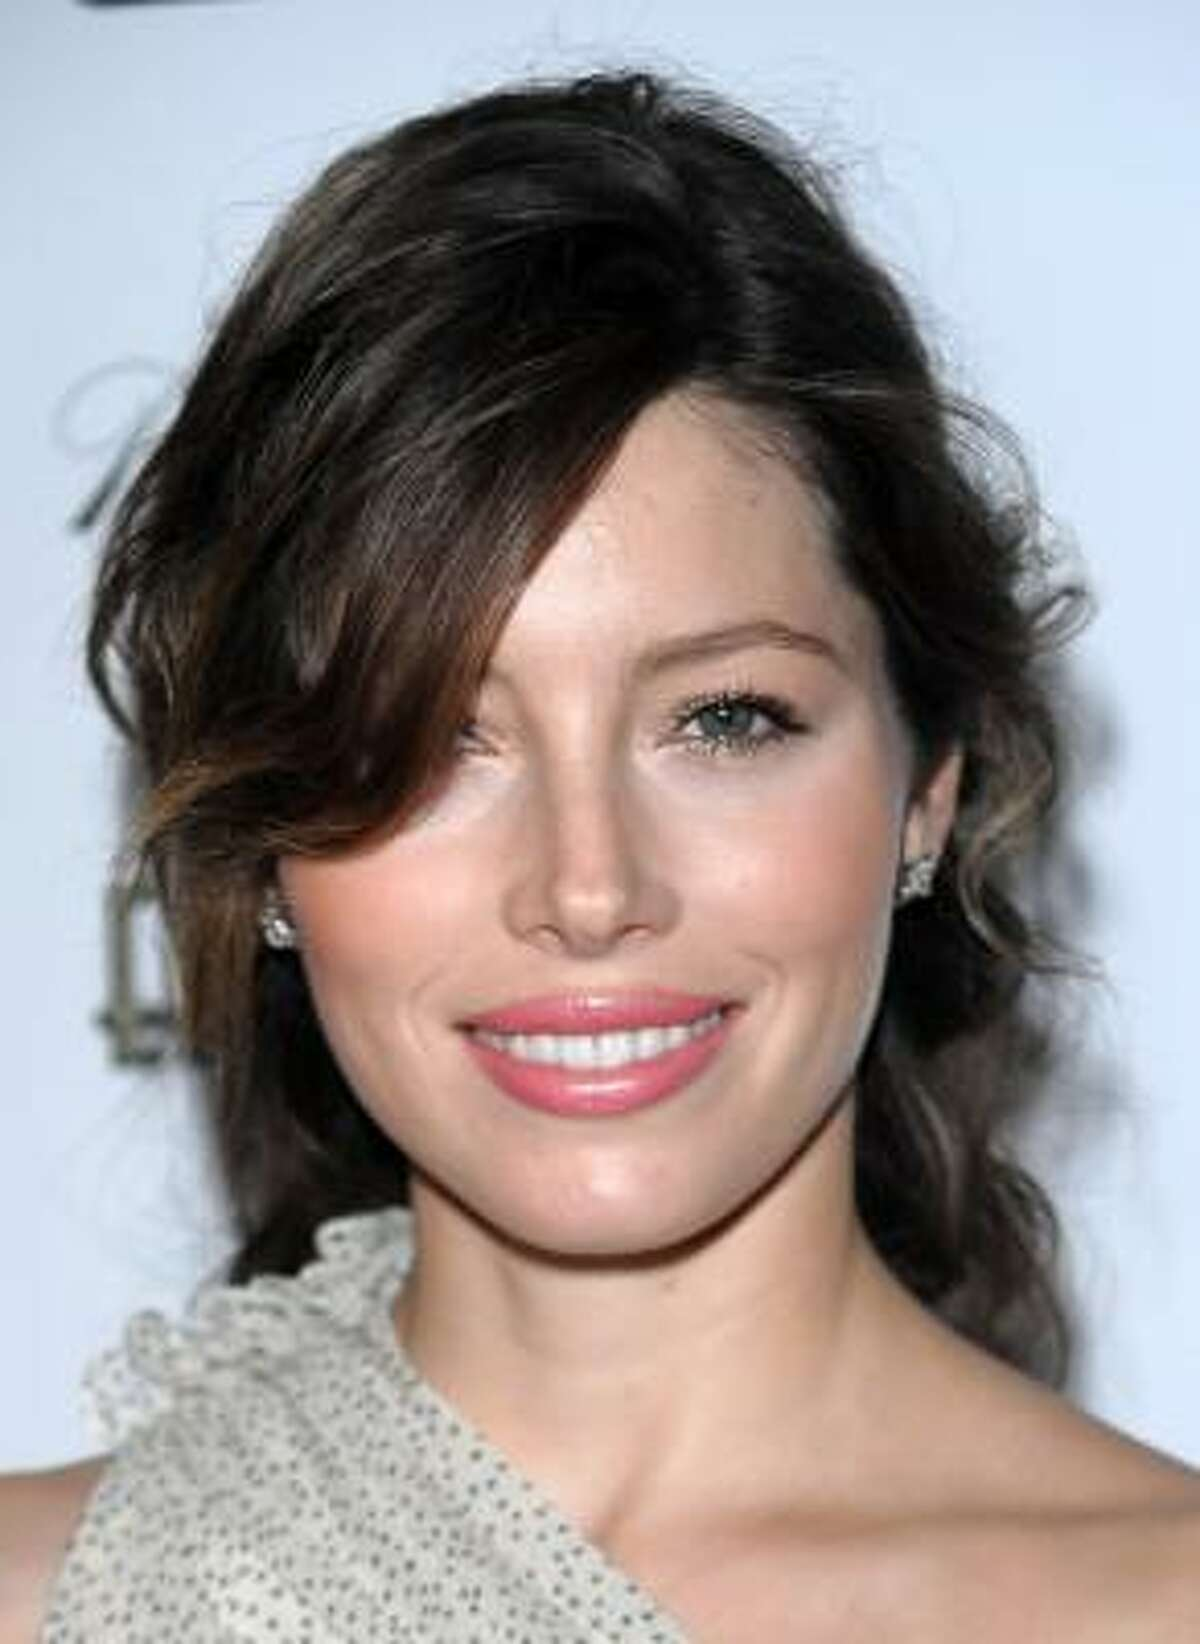 Jessica Biel is named the most dangerous celebrity to search on the Web, according to McAfee. See who else can give you a computer virus when dowloading pictures of them.